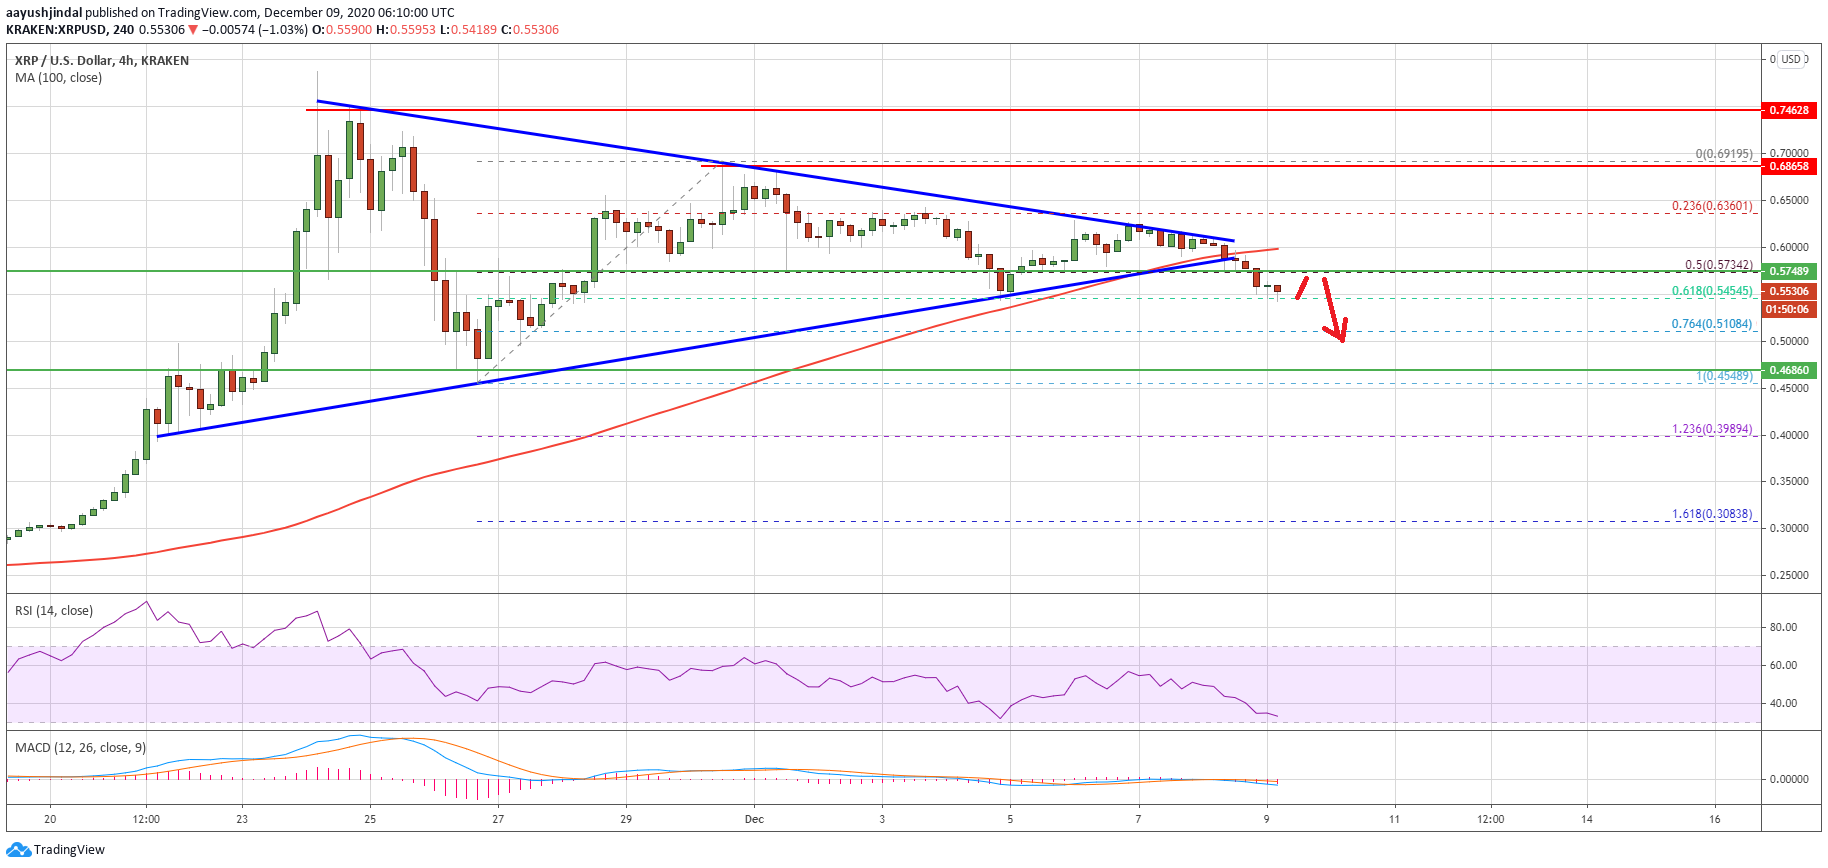 Charted: Ripple (XRP) Breakdown Looks Real, Why It Could Retest $0.45